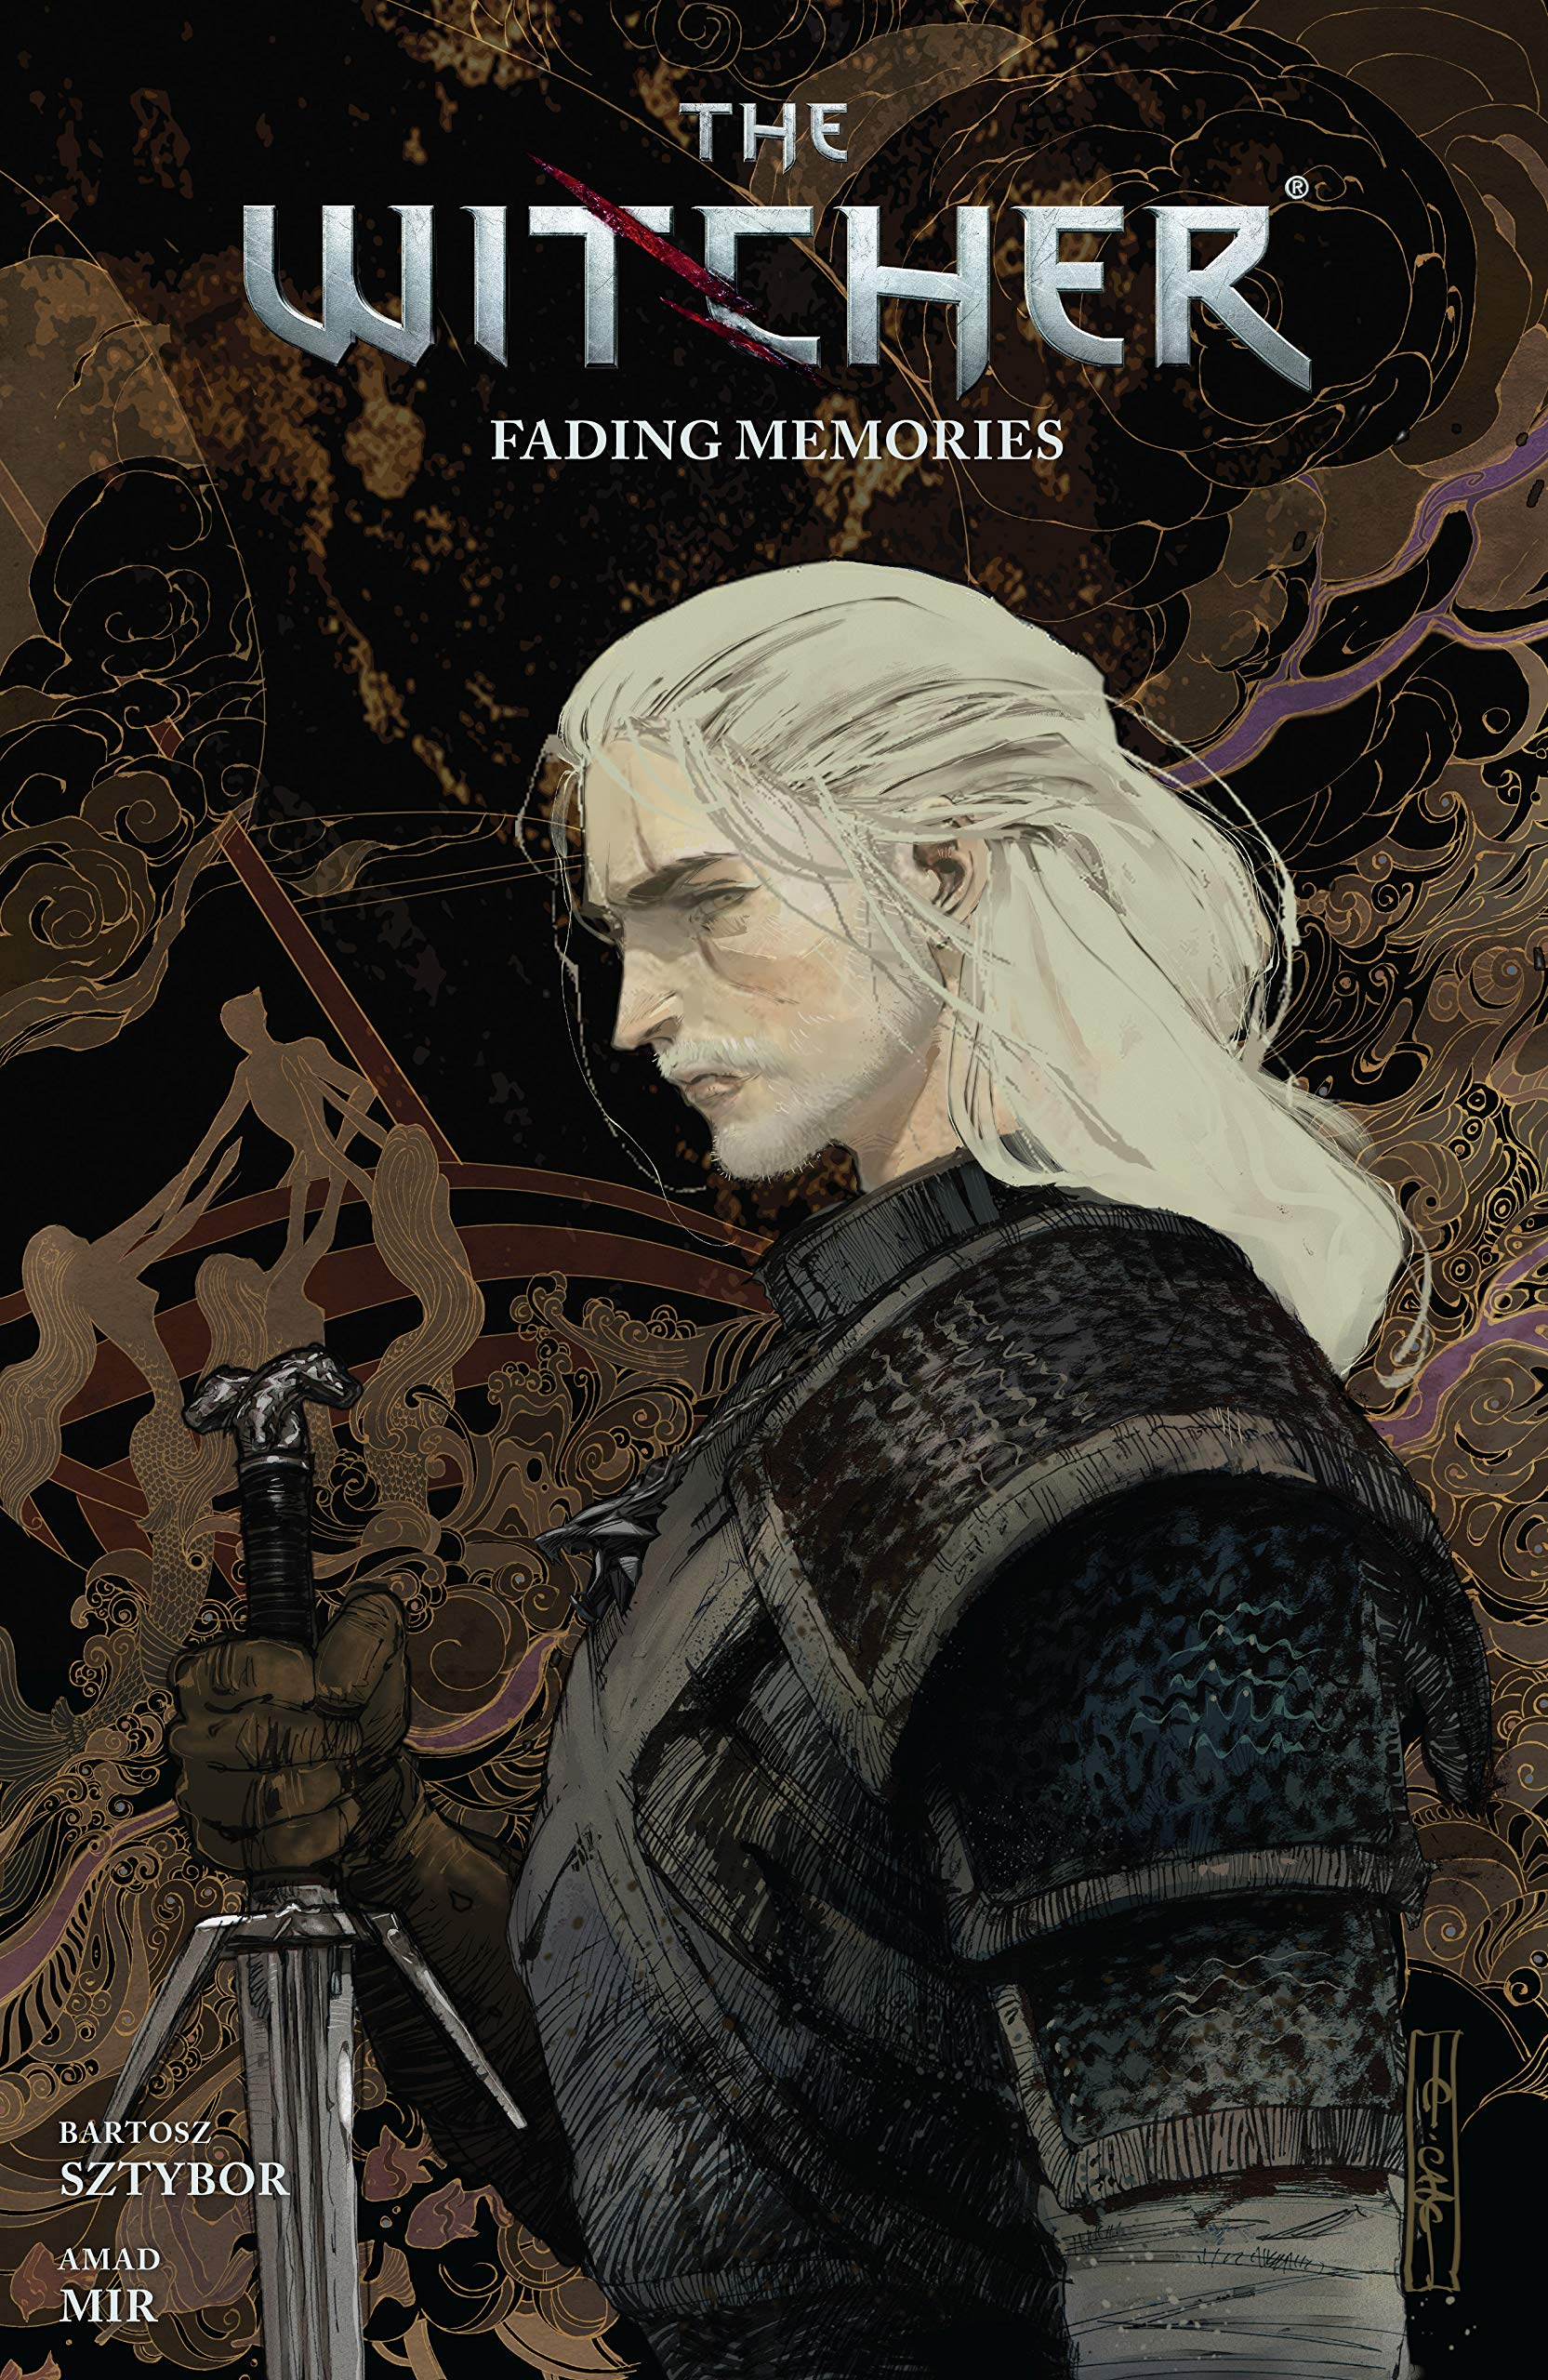 The Witcher, Vol. 5: Fading Memories